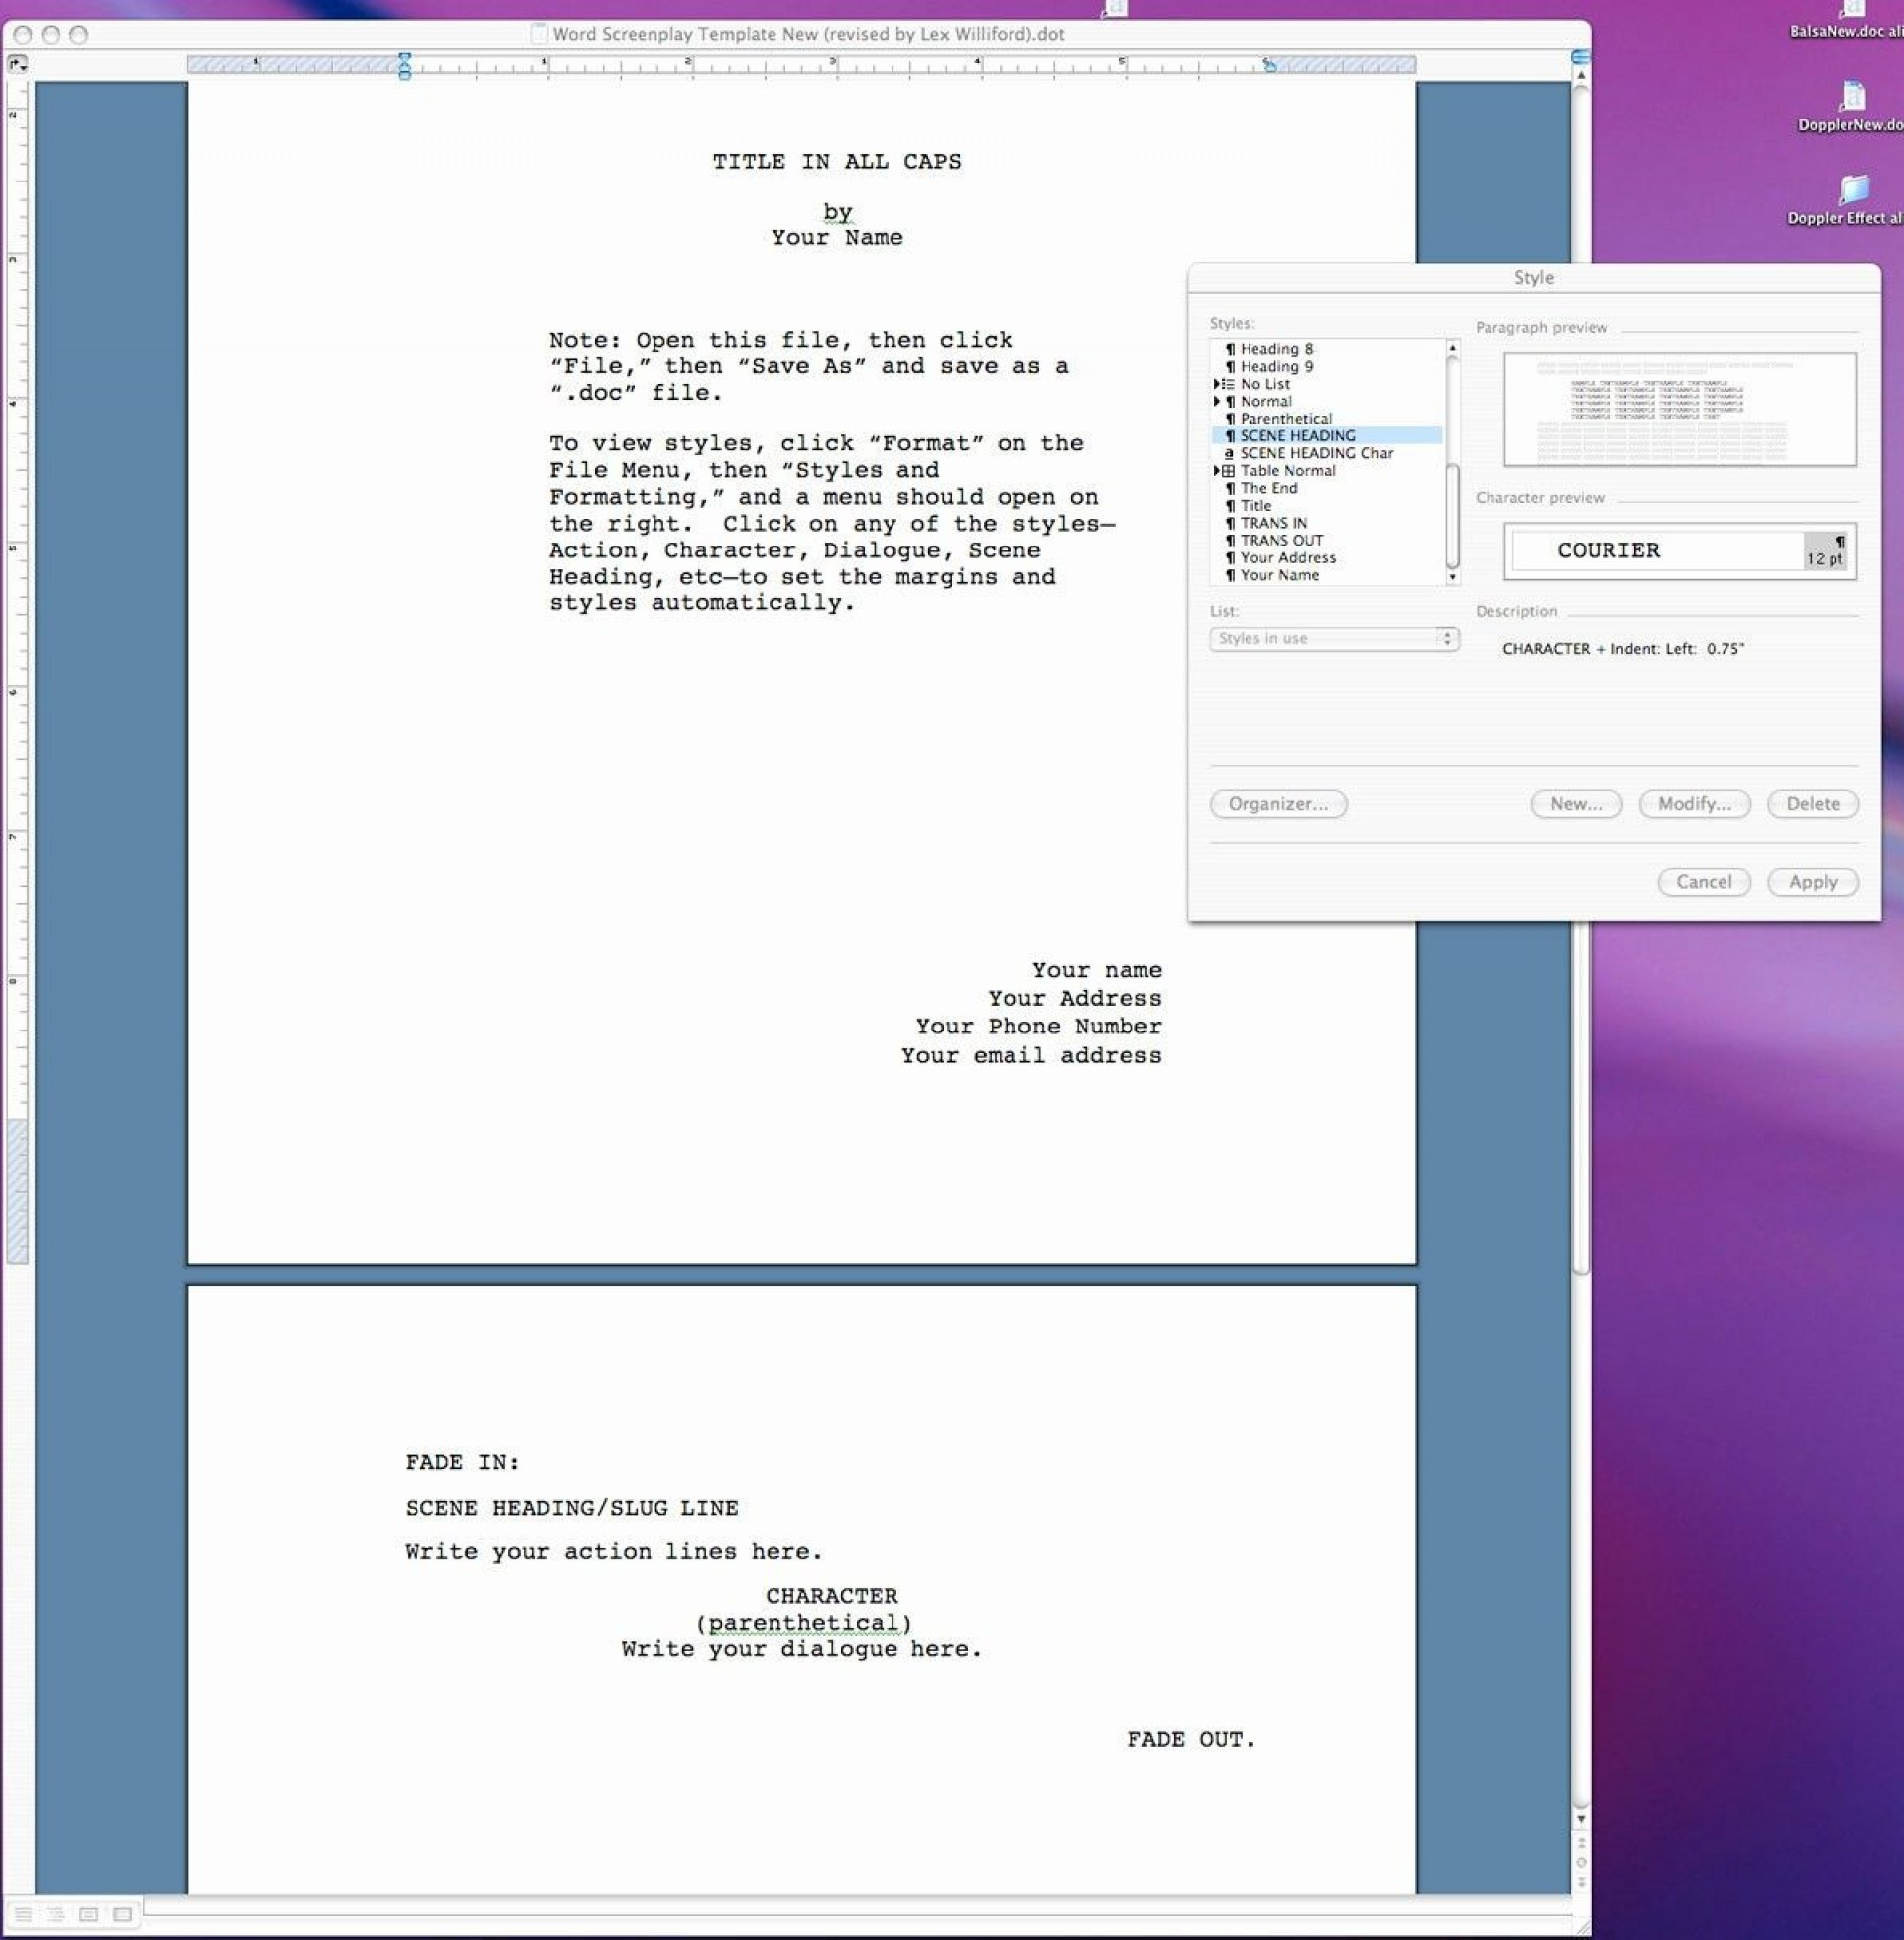 004 Excellent How To Use Microsoft Word Screenplay Template Sample 1920